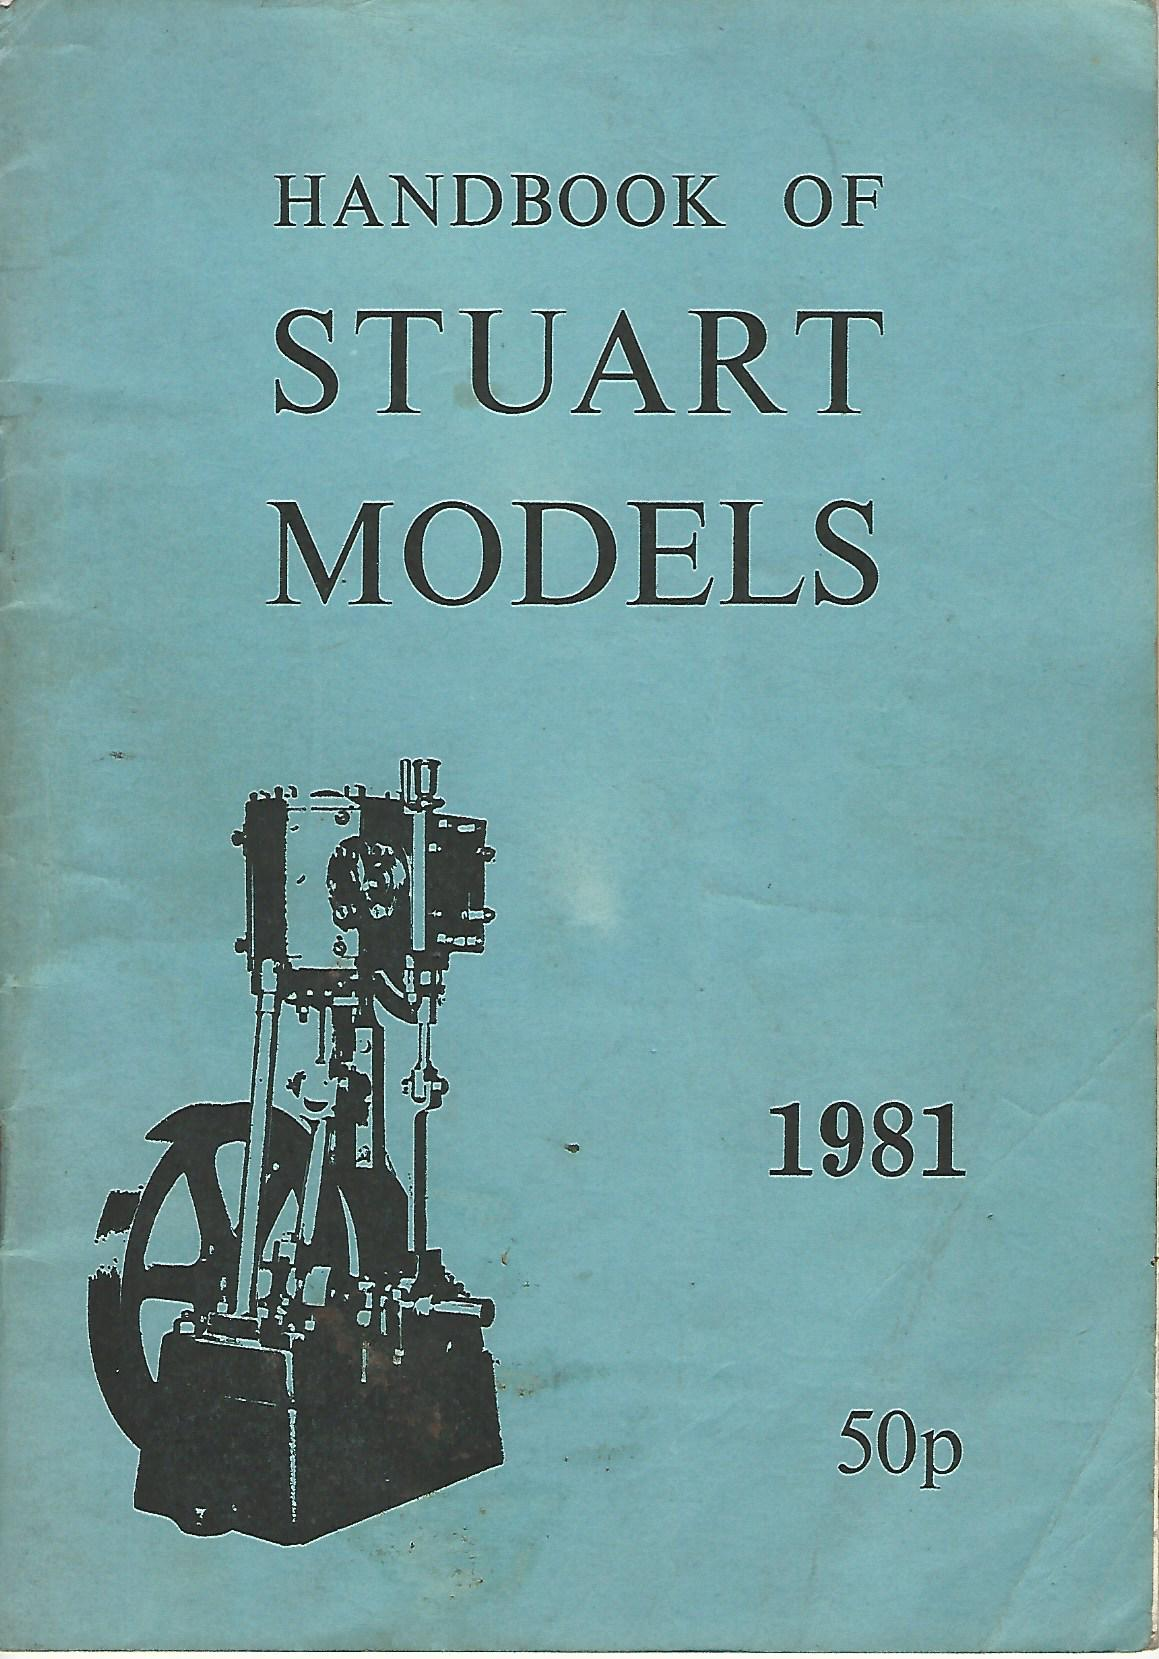 Image for Handbook of Stuart Models 1981.